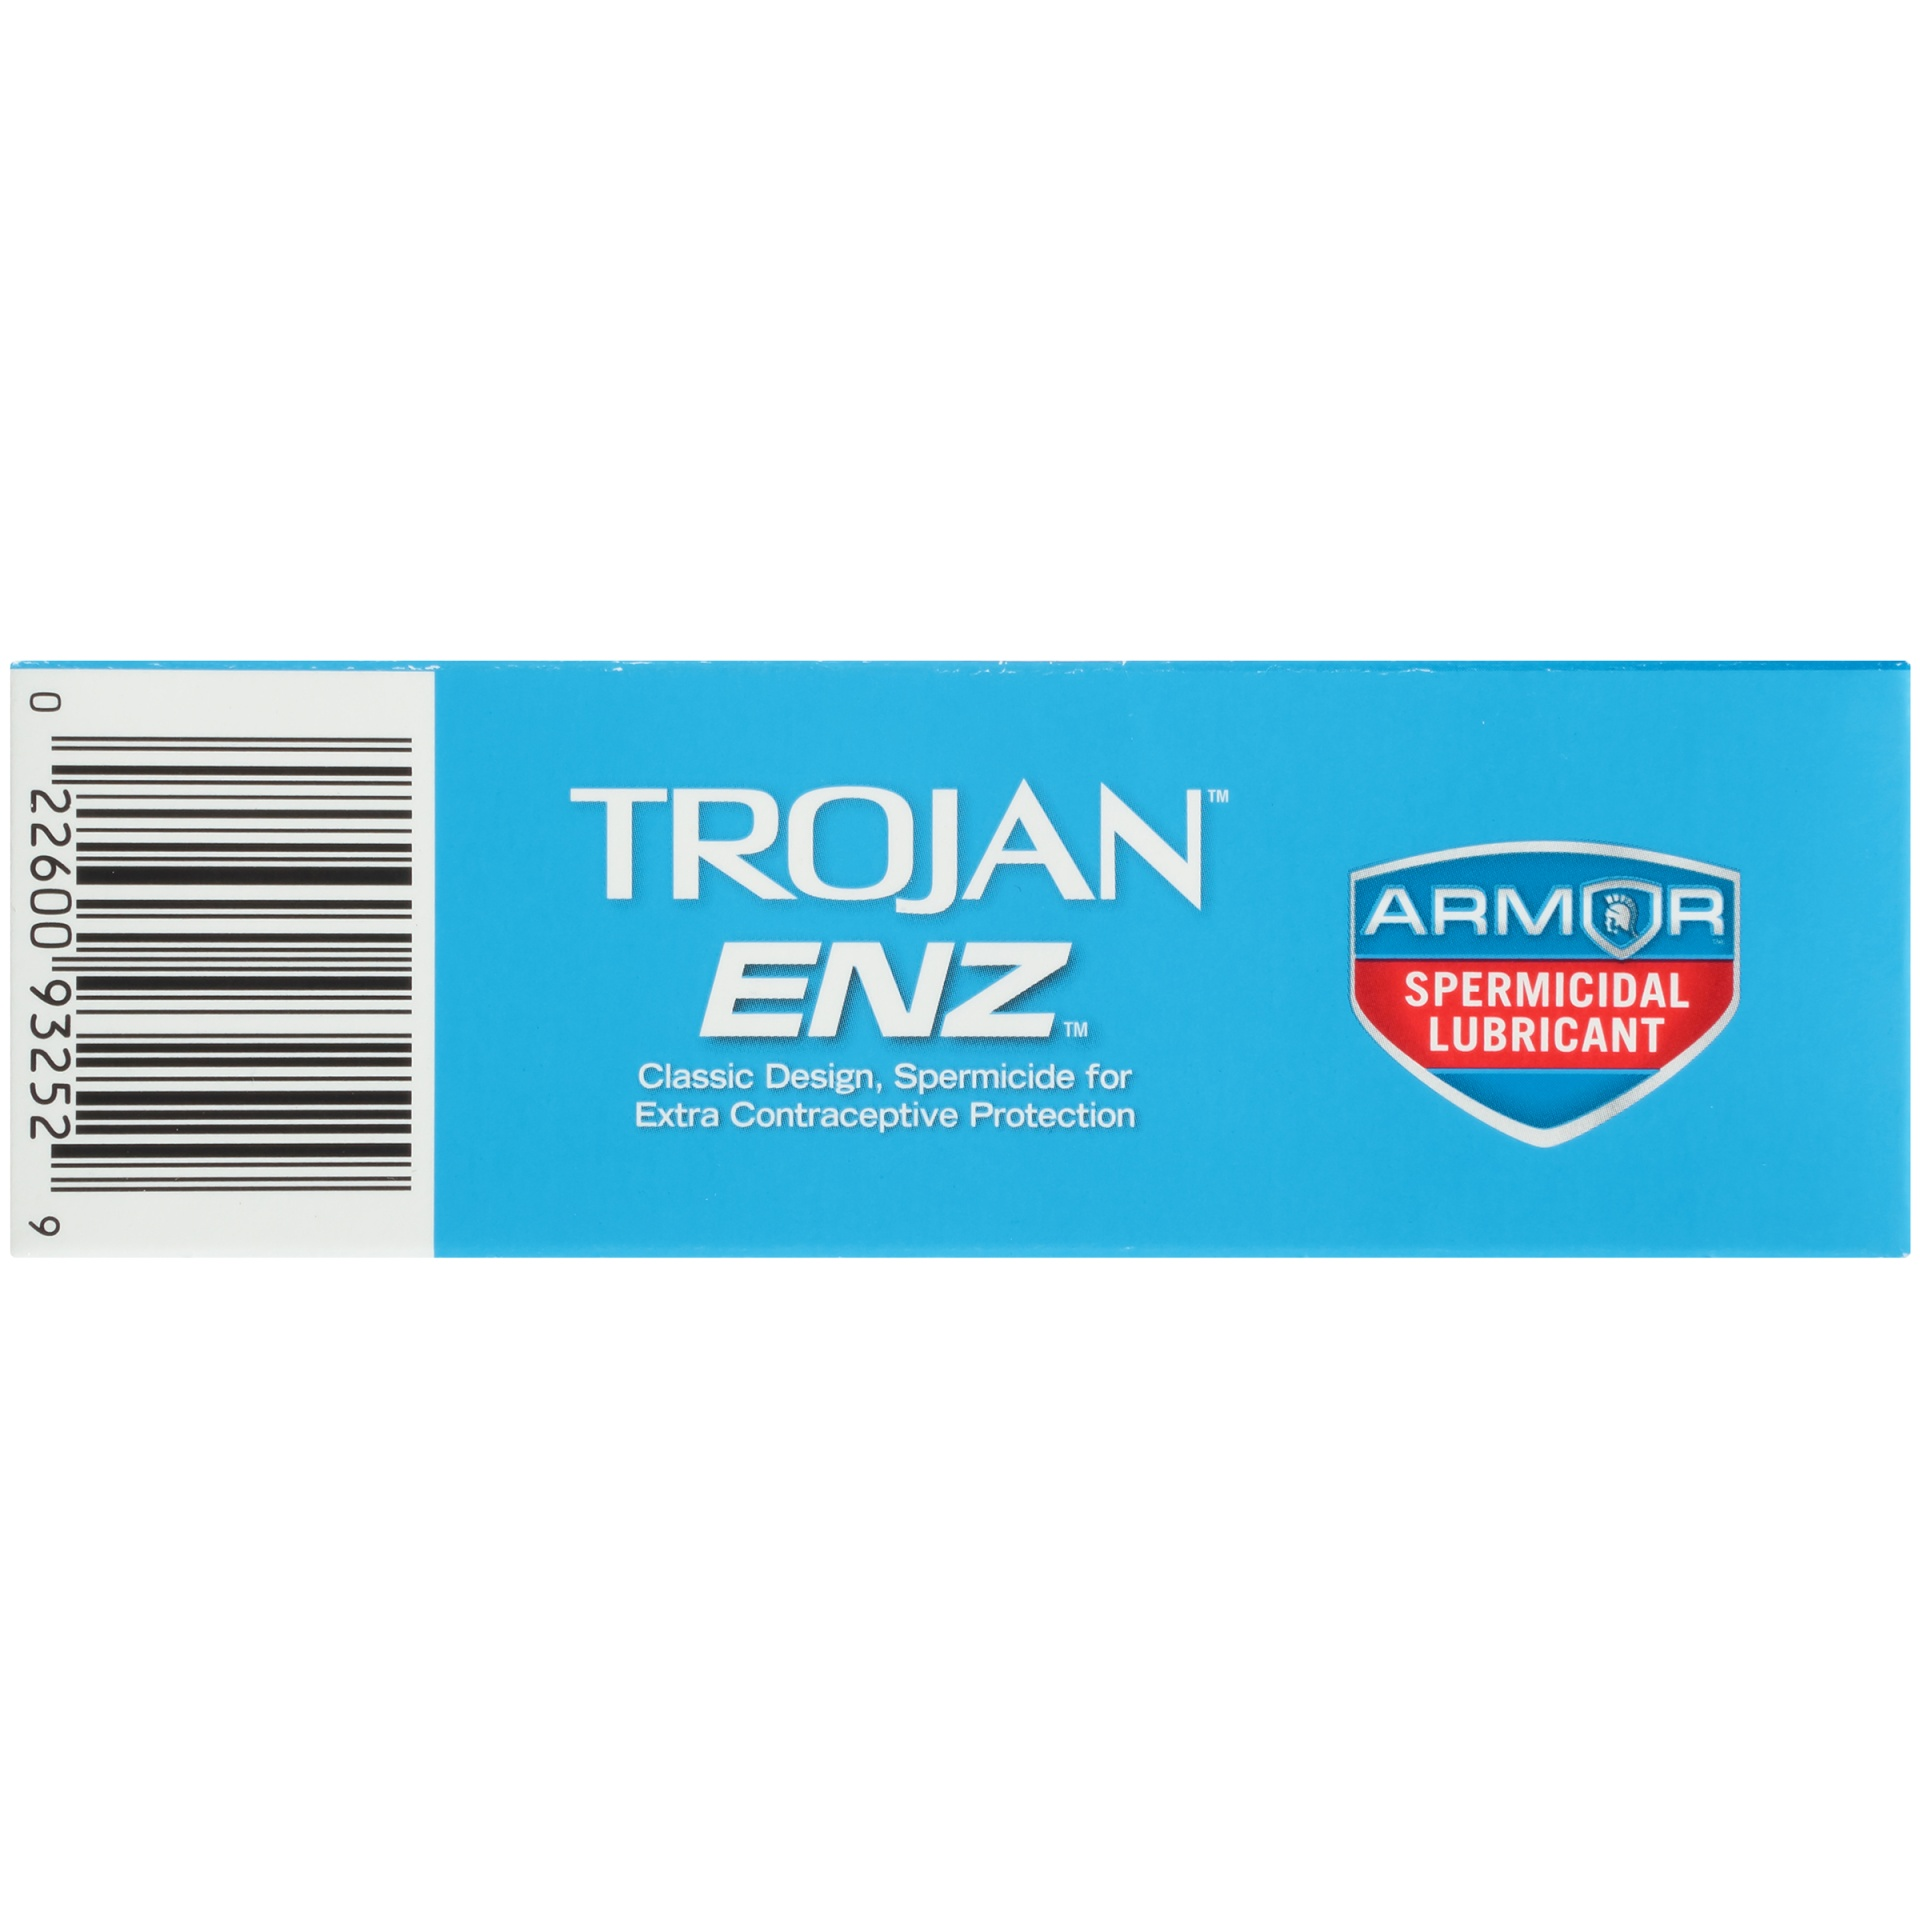 slide 6 of 7, Trojan ENZ Latex Condoms with Spermicidal Lubricant,